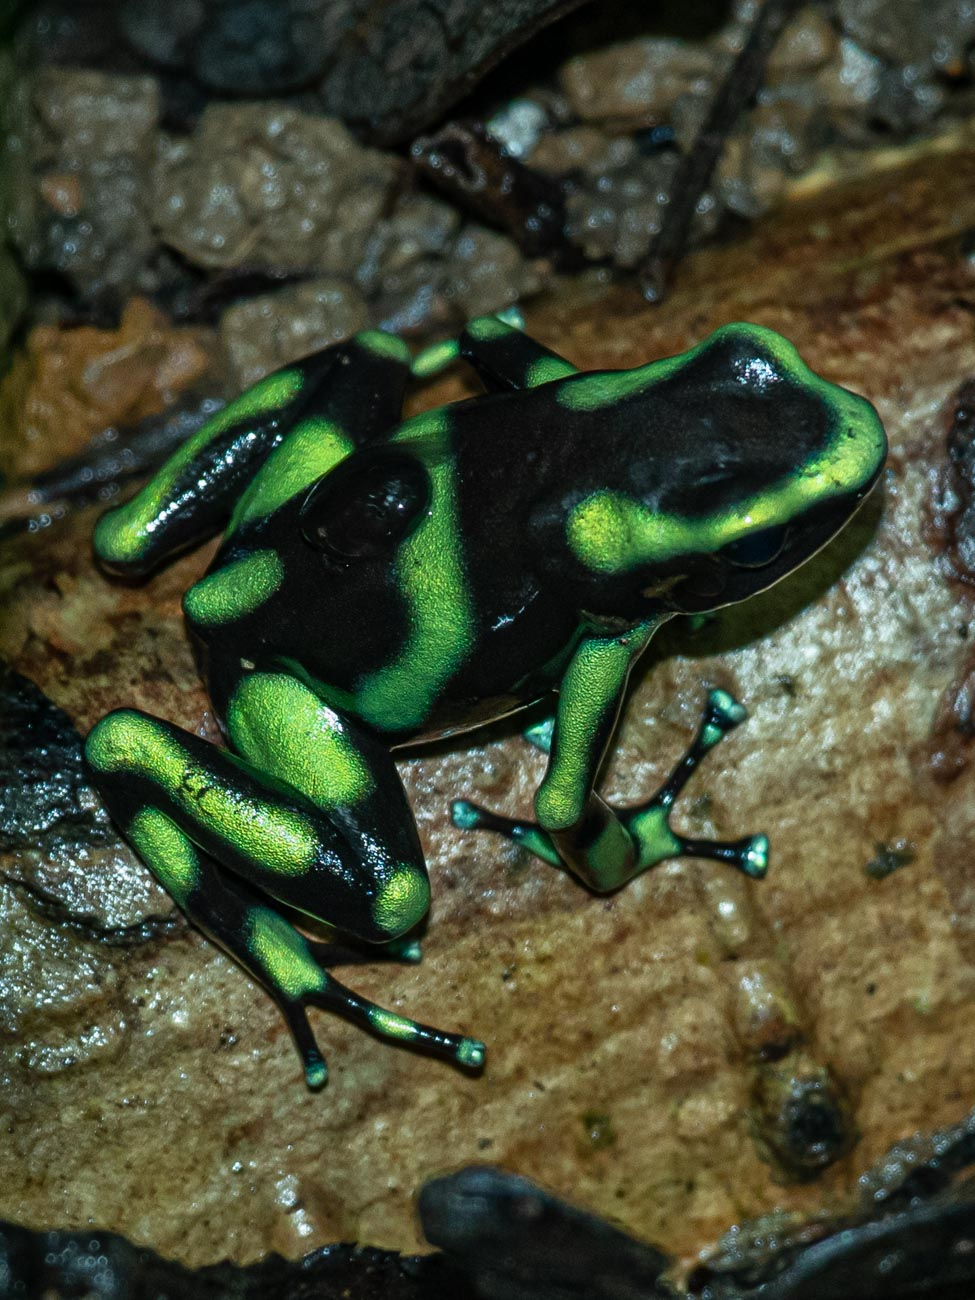 Green and Black Poisonous Frog